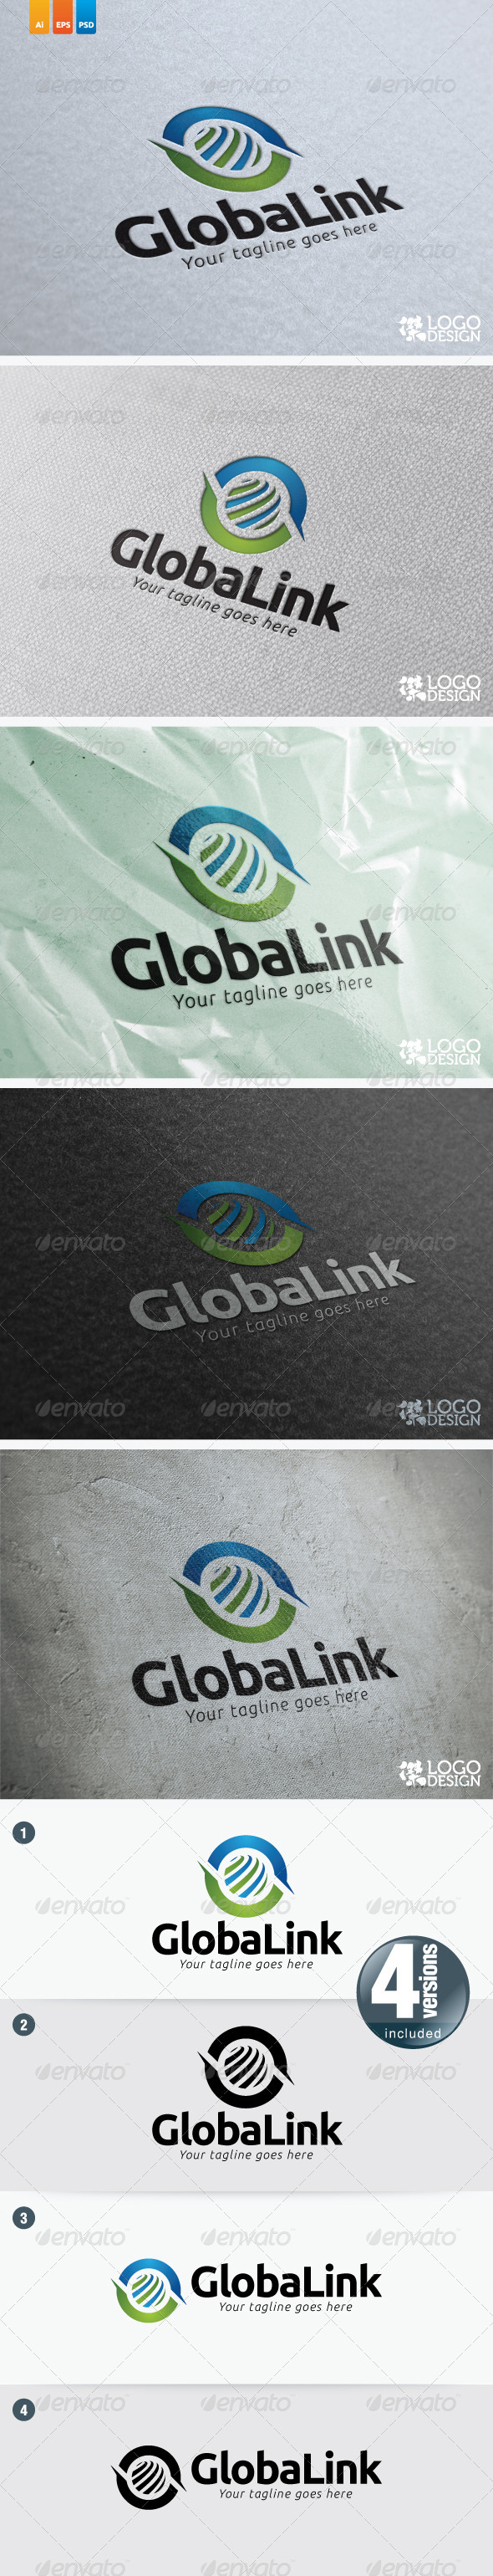 GraphicRiver GlobaLink 4520635